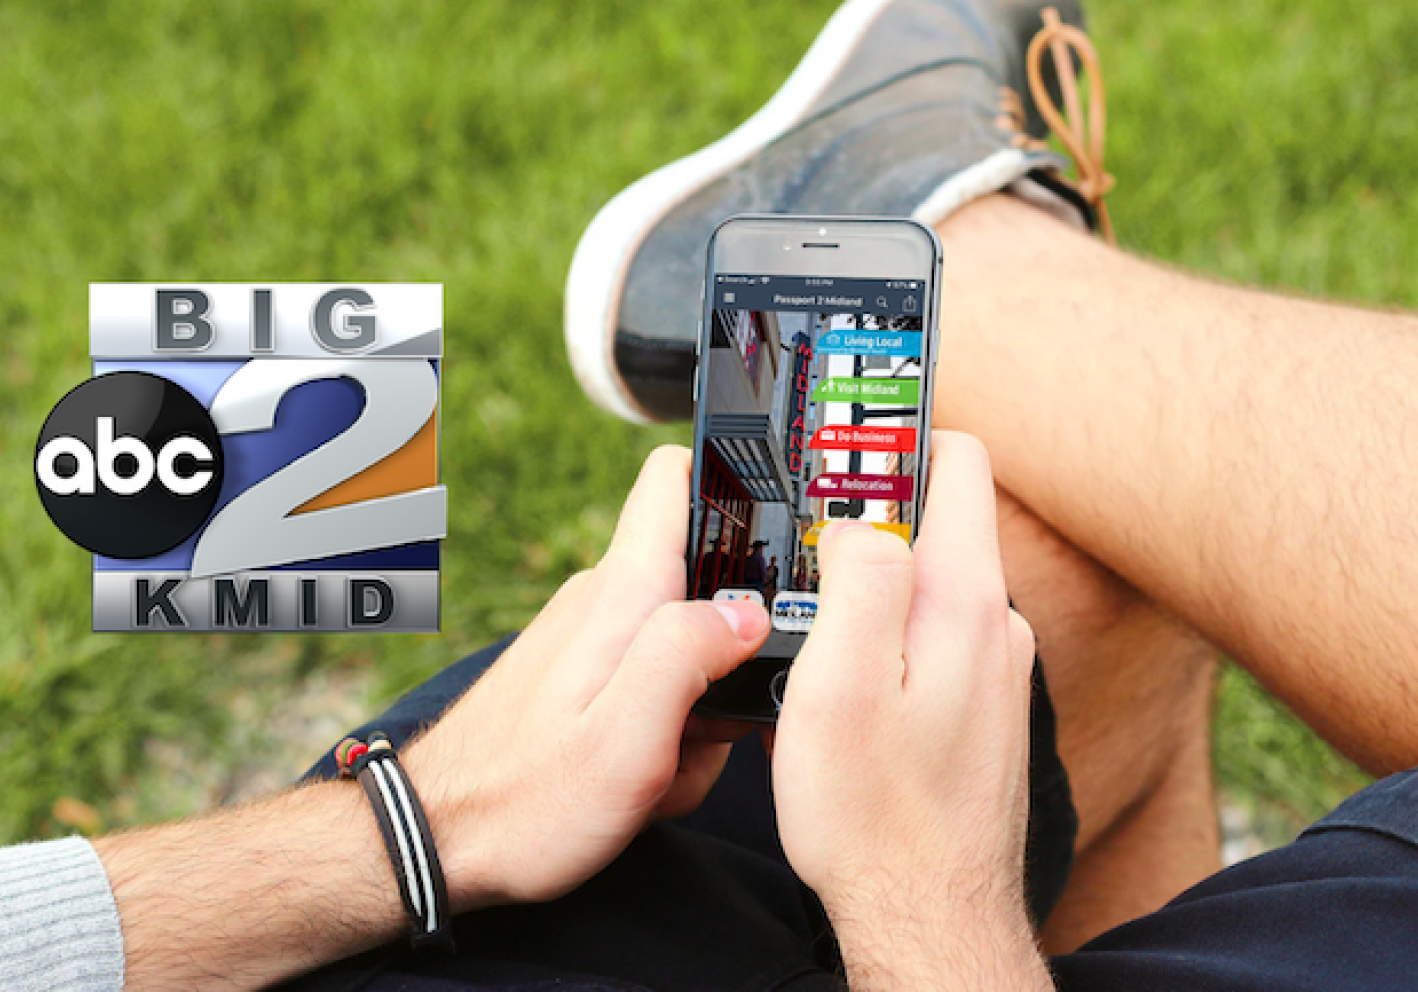 Big 2 KMID-TV is the Official Media Partner of Passport 2 Midland